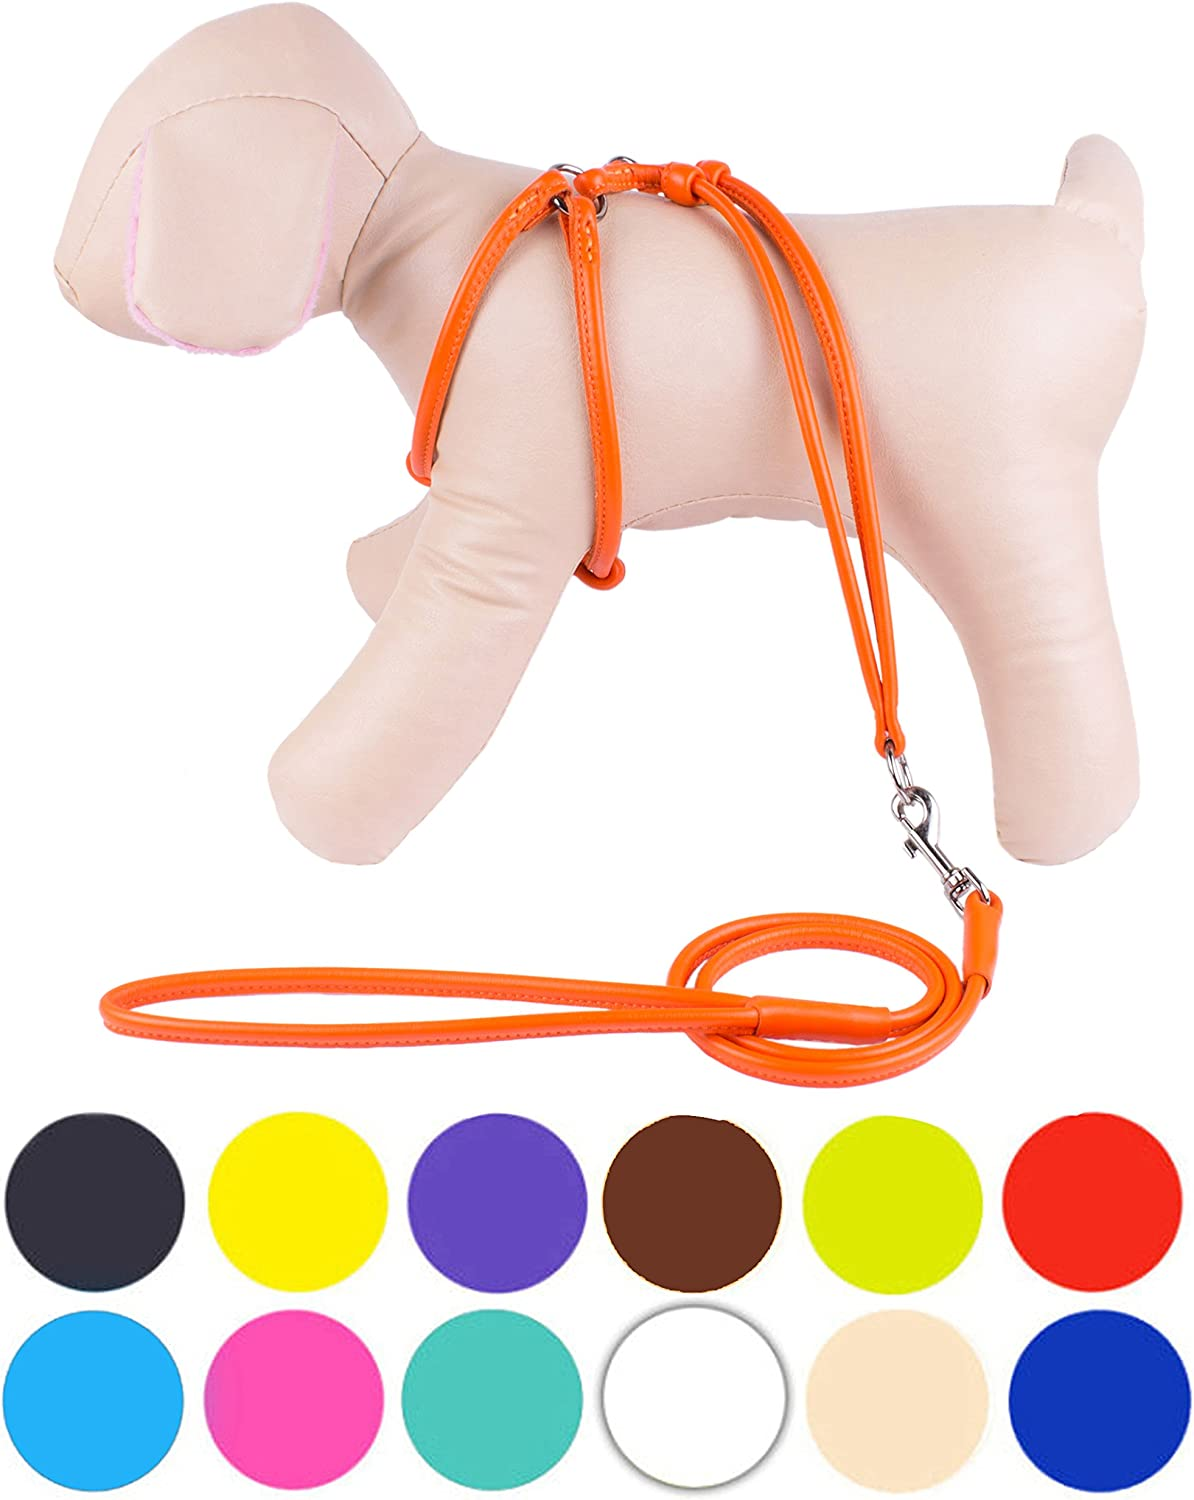 CollarDirect Rolled Leather Dog Harness Small Puppy Stepin Leash Set for Walking Pink Red White bluee Green Black Purple Beige Brown Yellow (orange, XS)